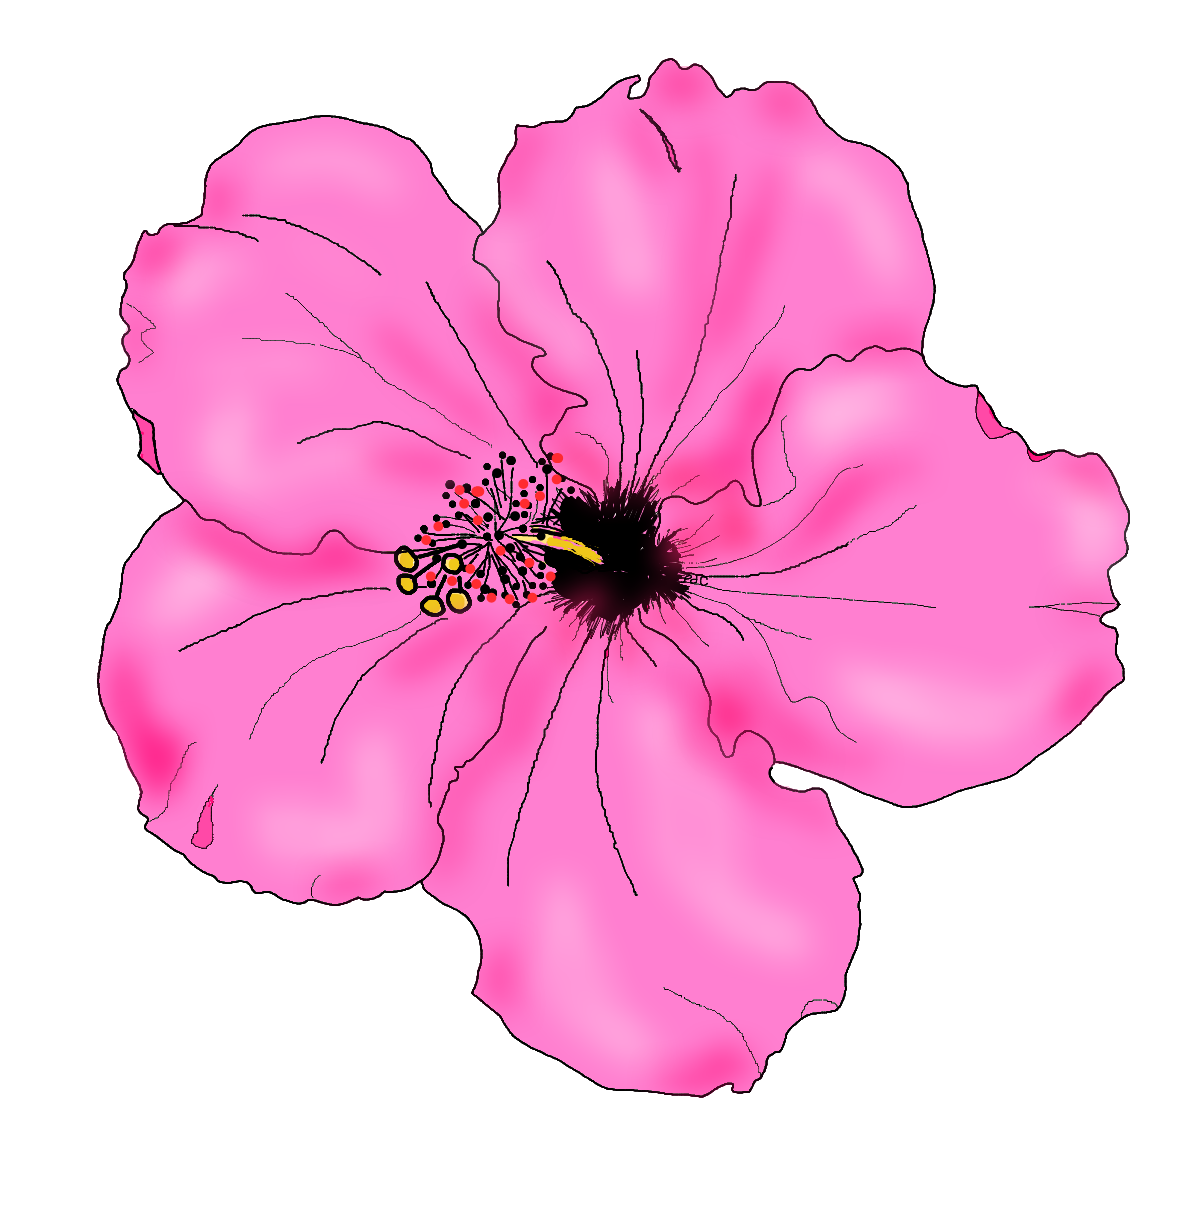 Drawn flowers png. Free hibiscus flower drawings